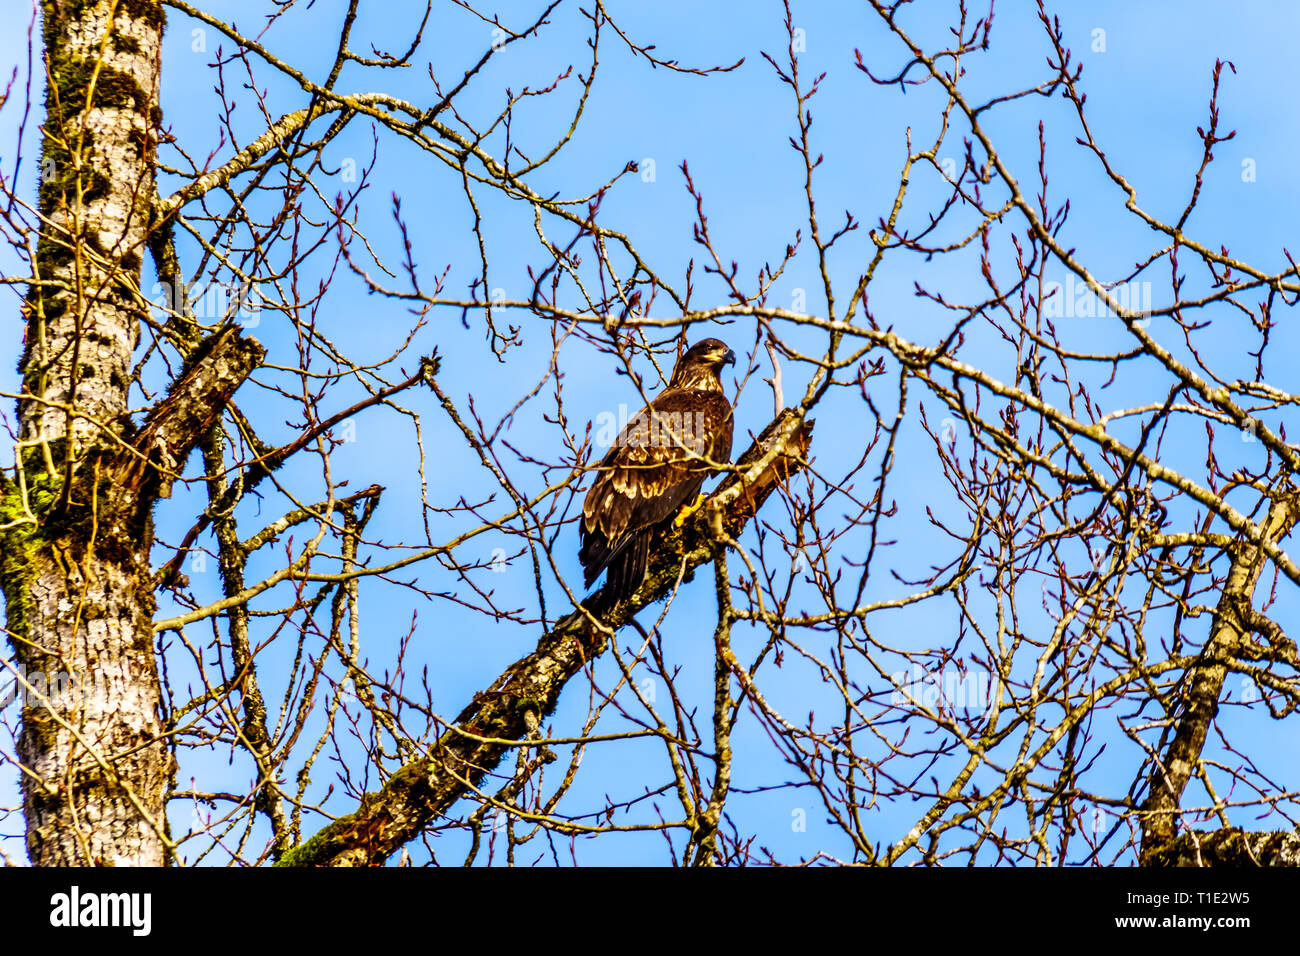 Young Bald Eagle in a tree watching for spawning salmon in the Stave River downstream of the Ruskin Dam at Hayward Lake near Mission, BC, Canada - Stock Image